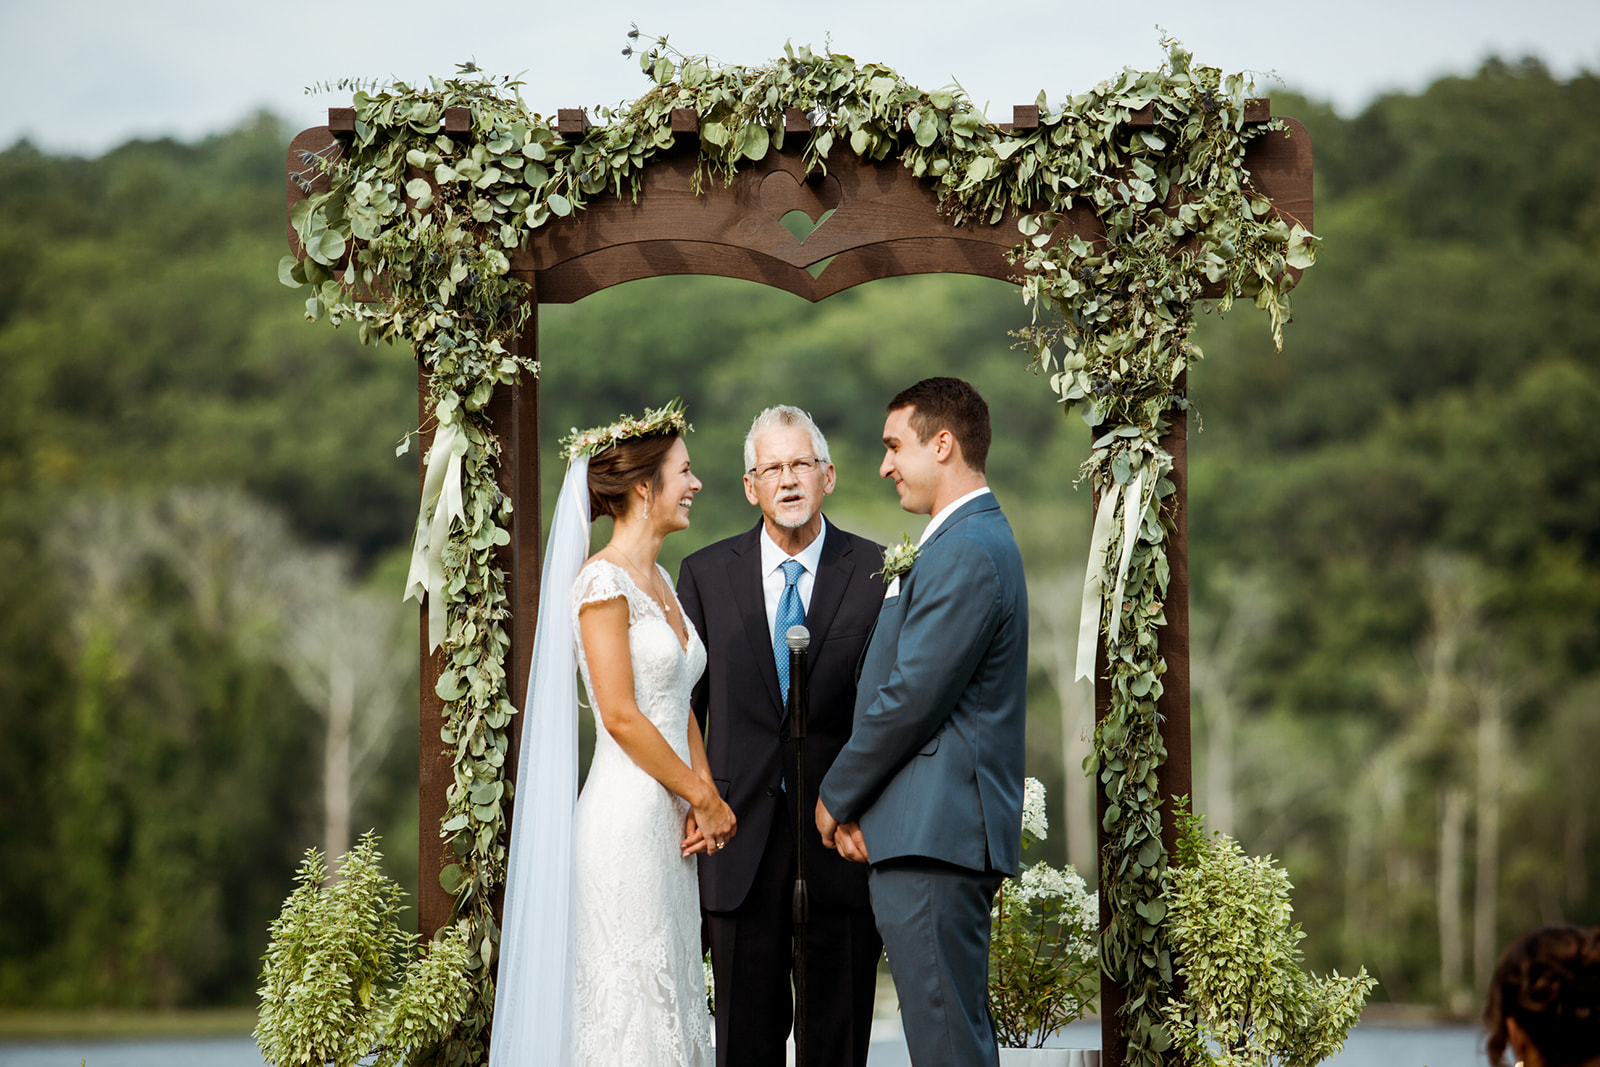 Their ceremony archway was built by Sommar's uncle. The details of his woodwork went beautifully with the backdrop and perfect potted plants! - Pearl Weddings & Events